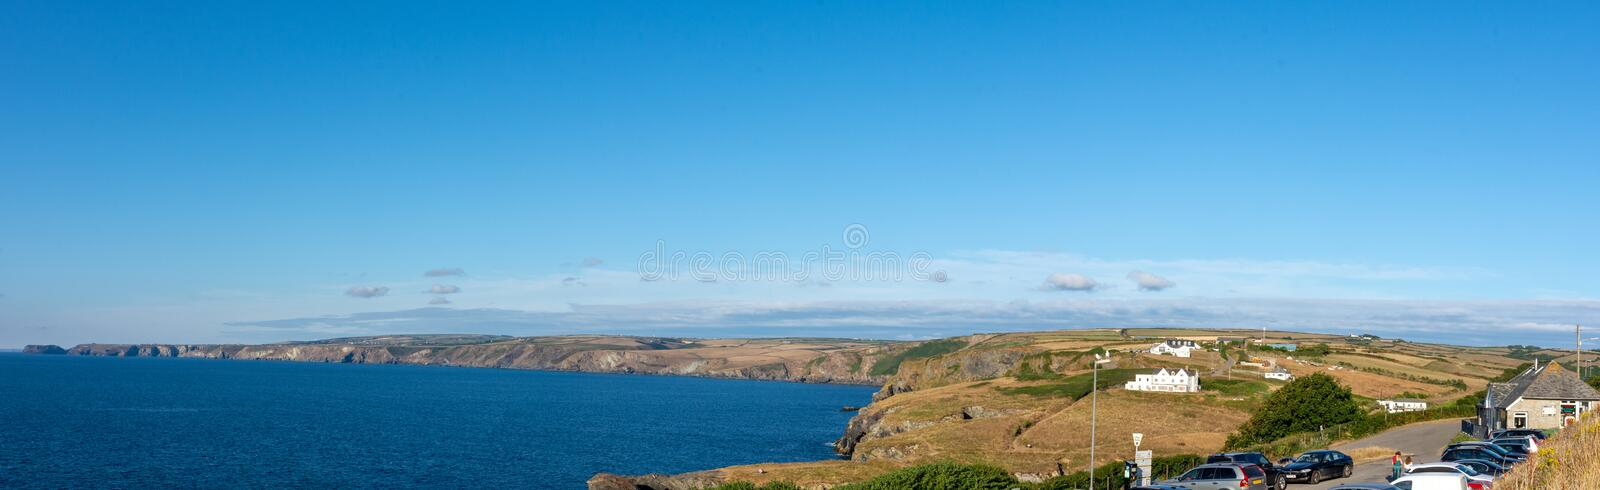 Sea views in Port Isaac, car park,  Cornwall pano royalty free stock image